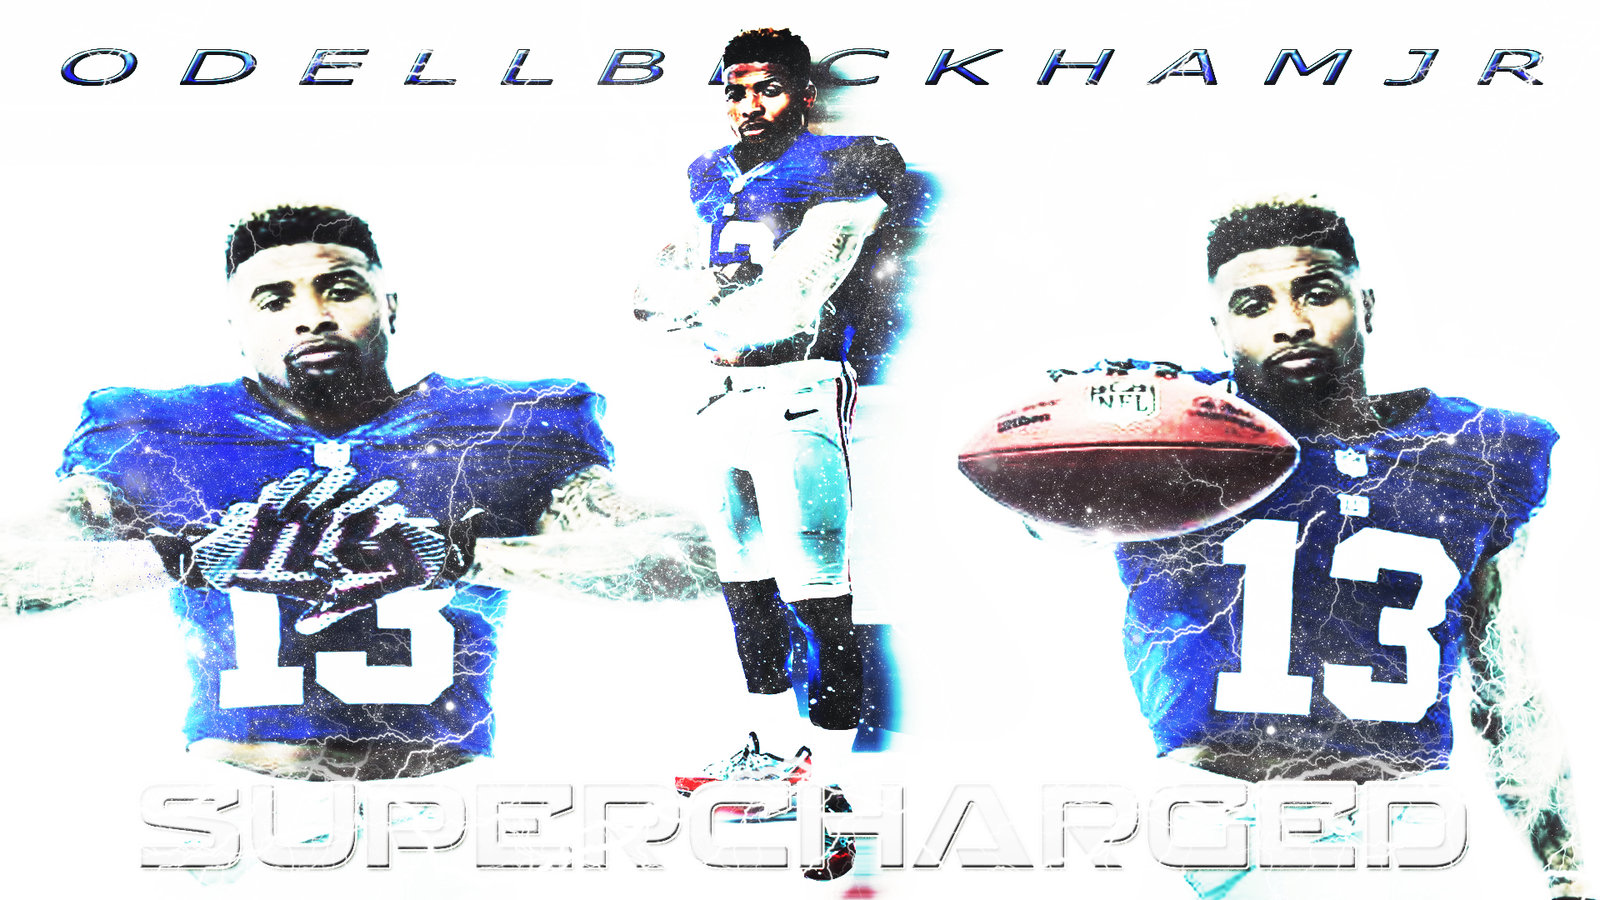 odell beckham jr wallpaper by bengal by bengalbro fan art wallpaper 1600x900